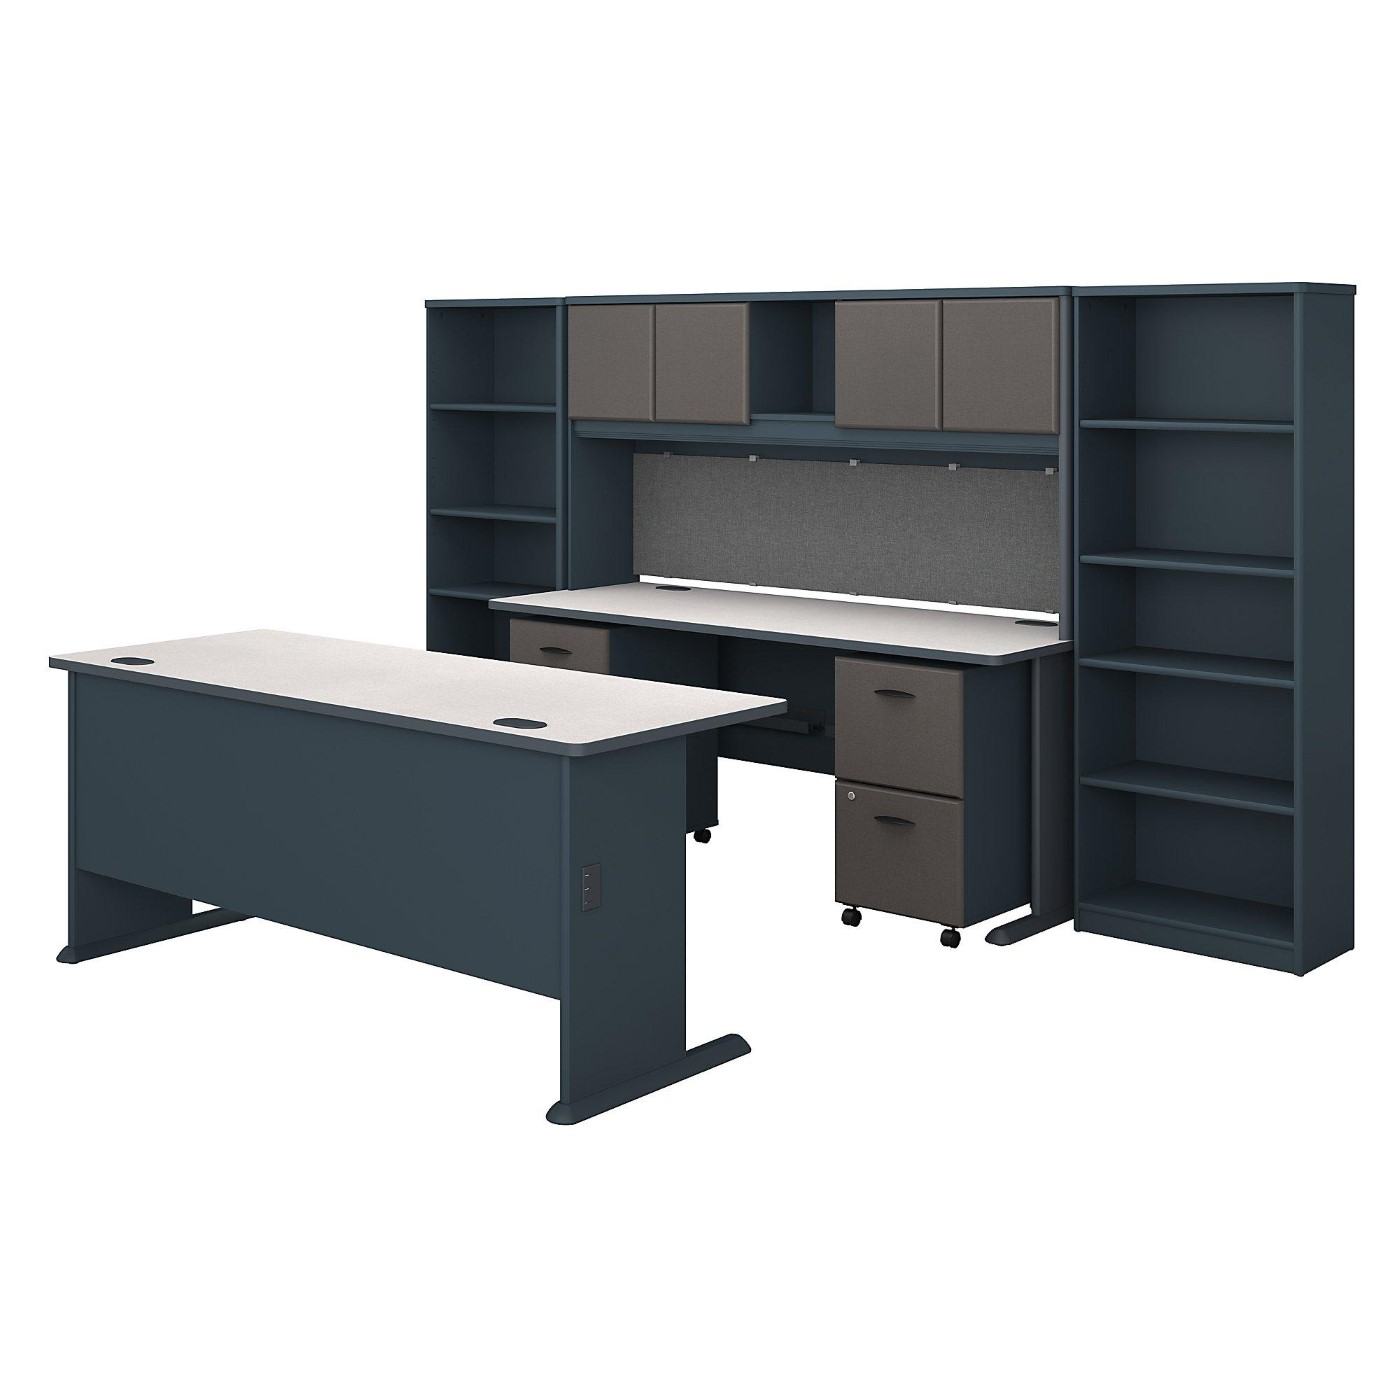 <font color=#c60><b>BUSH BUSINESS FURNITURE SERIES A 72W DESK WITH CREDENZA, HUTCH, BOOKCASES AND STORAGE. FREE SHIPPING</font></b>